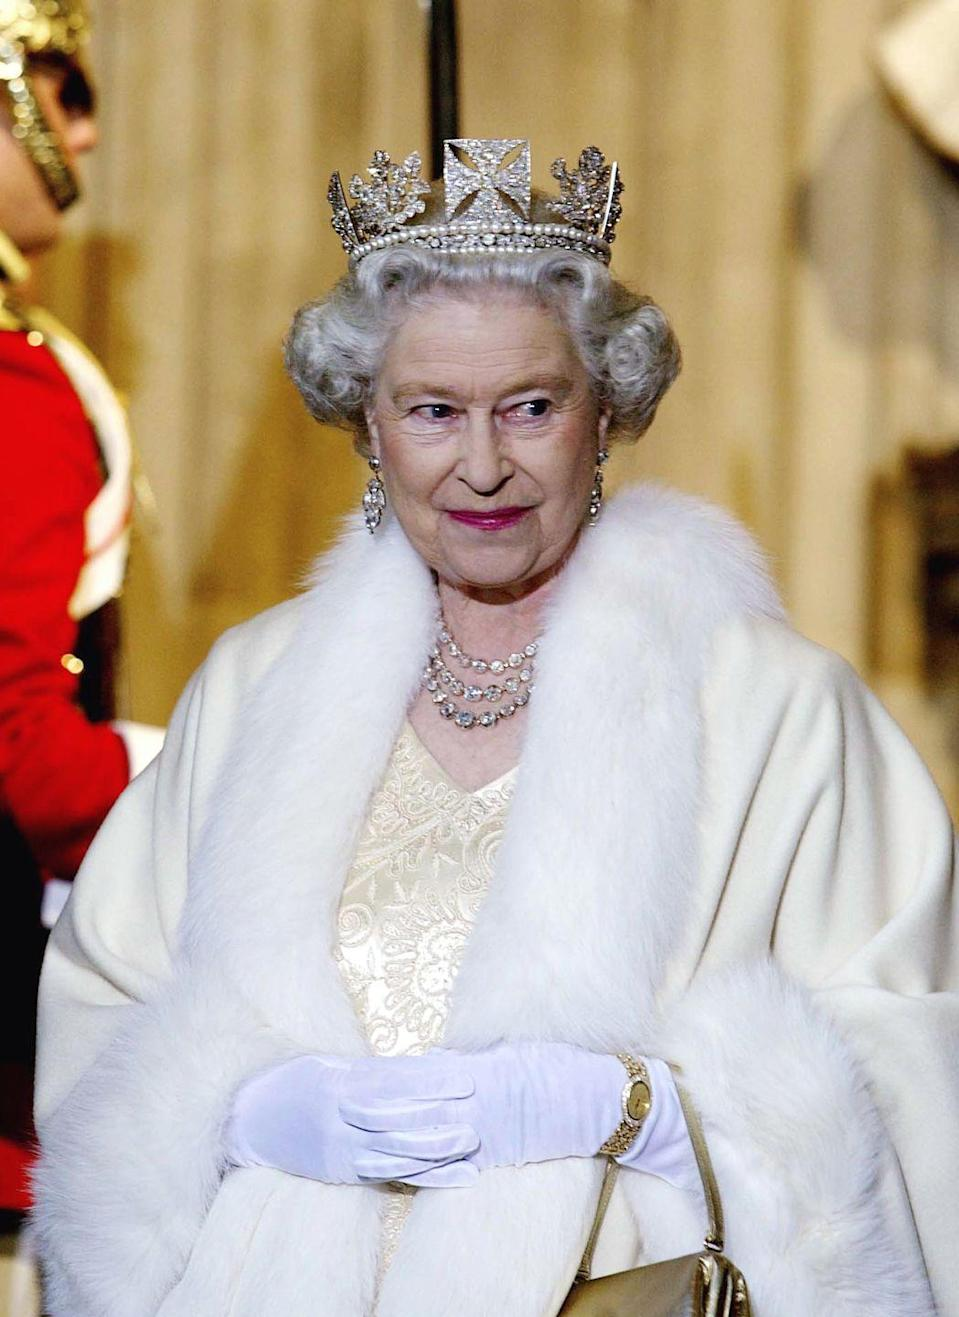 """<p>The Queen's diamond crown, which she's pictured wearing on November 13, 2002, is known as the State Diadem and was made in 1820 for <span class=""""redactor-unlink"""">King George IV</span>, Queen Victoria's uncle. The <span class=""""redactor-unlink"""">diadem</span> is traditionally worn by queens and <span class=""""redactor-unlink"""">queens consort</span> to the <span class=""""redactor-unlink"""">State Openings of Parliament</span>.</p>"""